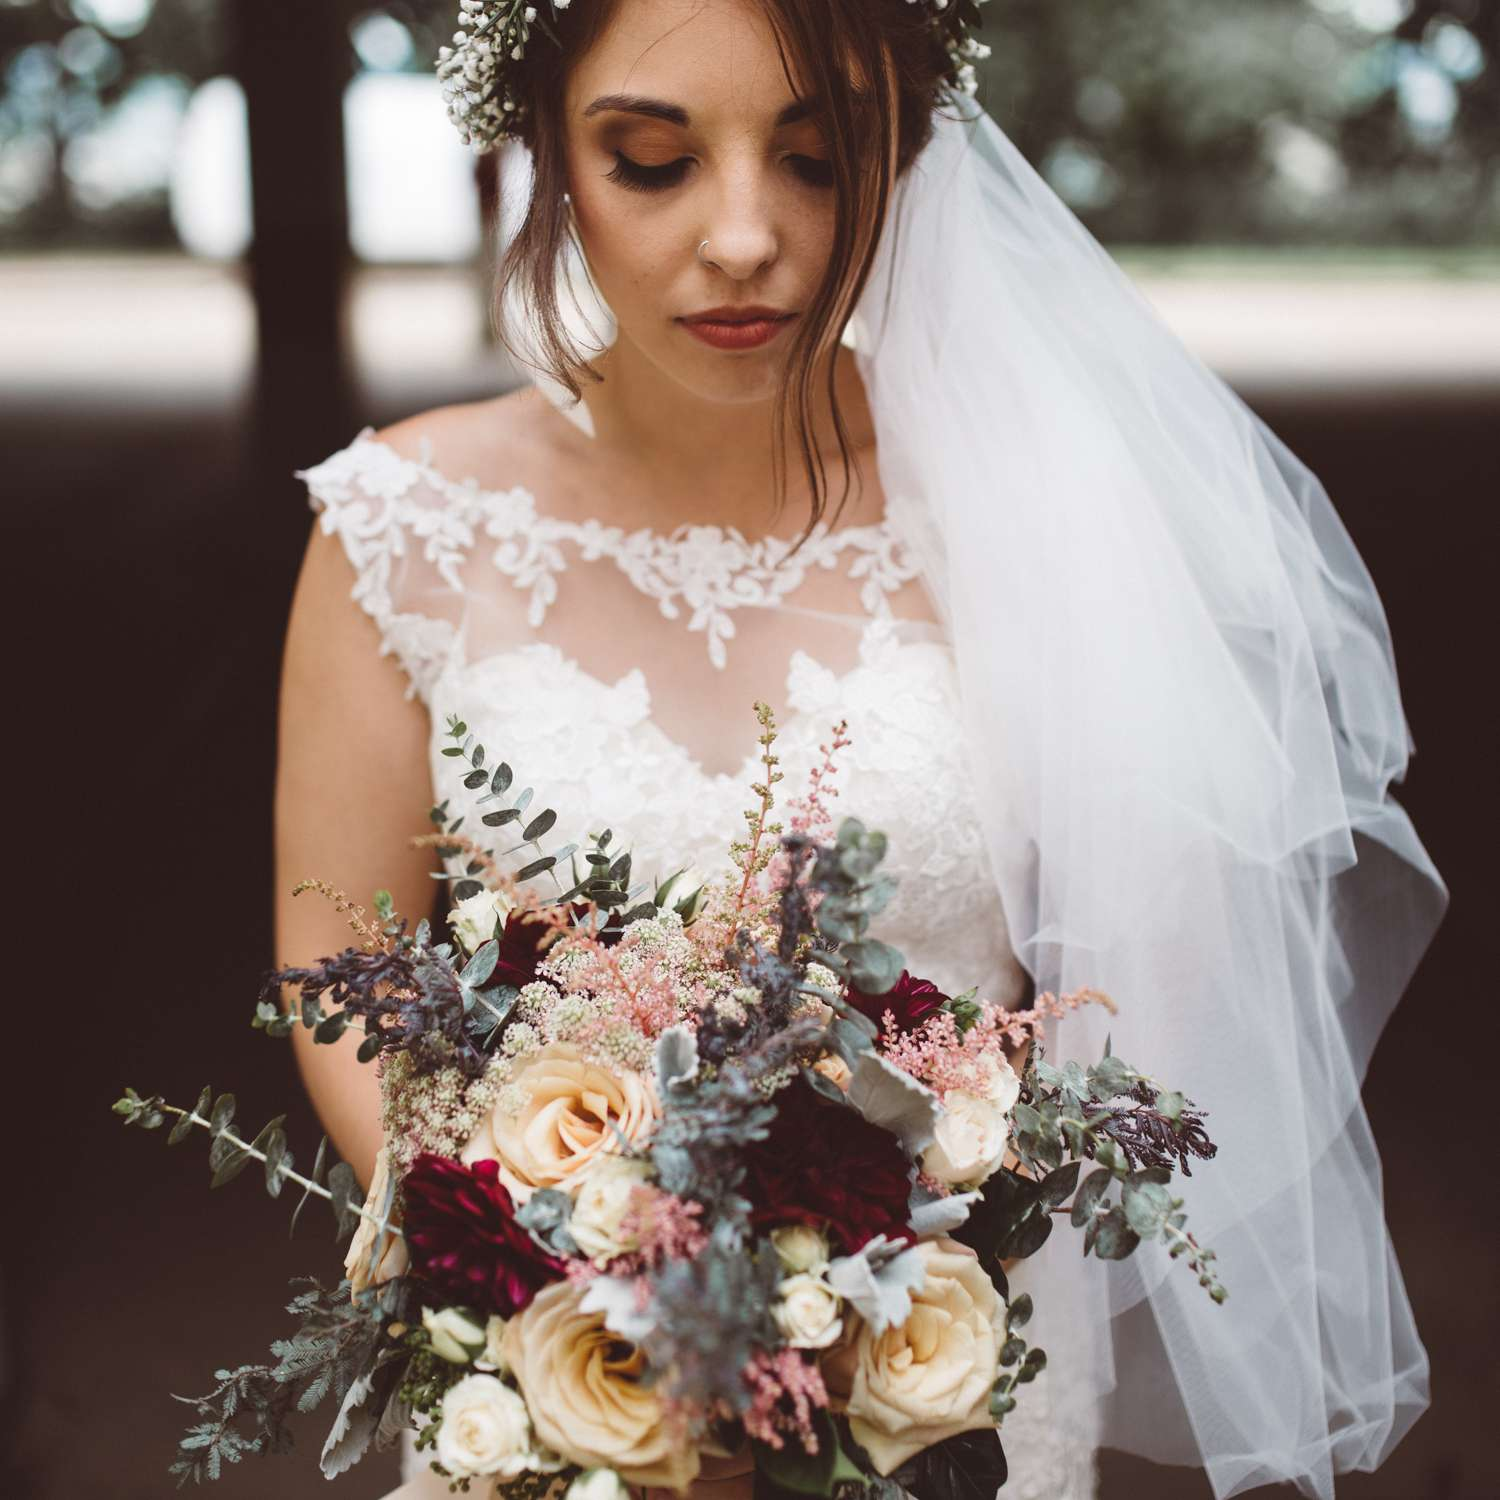 Fall Wedding Hairstyles With Flower Crown: 41 Whimsical Flower Crown Ideas For Your Wedding Hairstyle